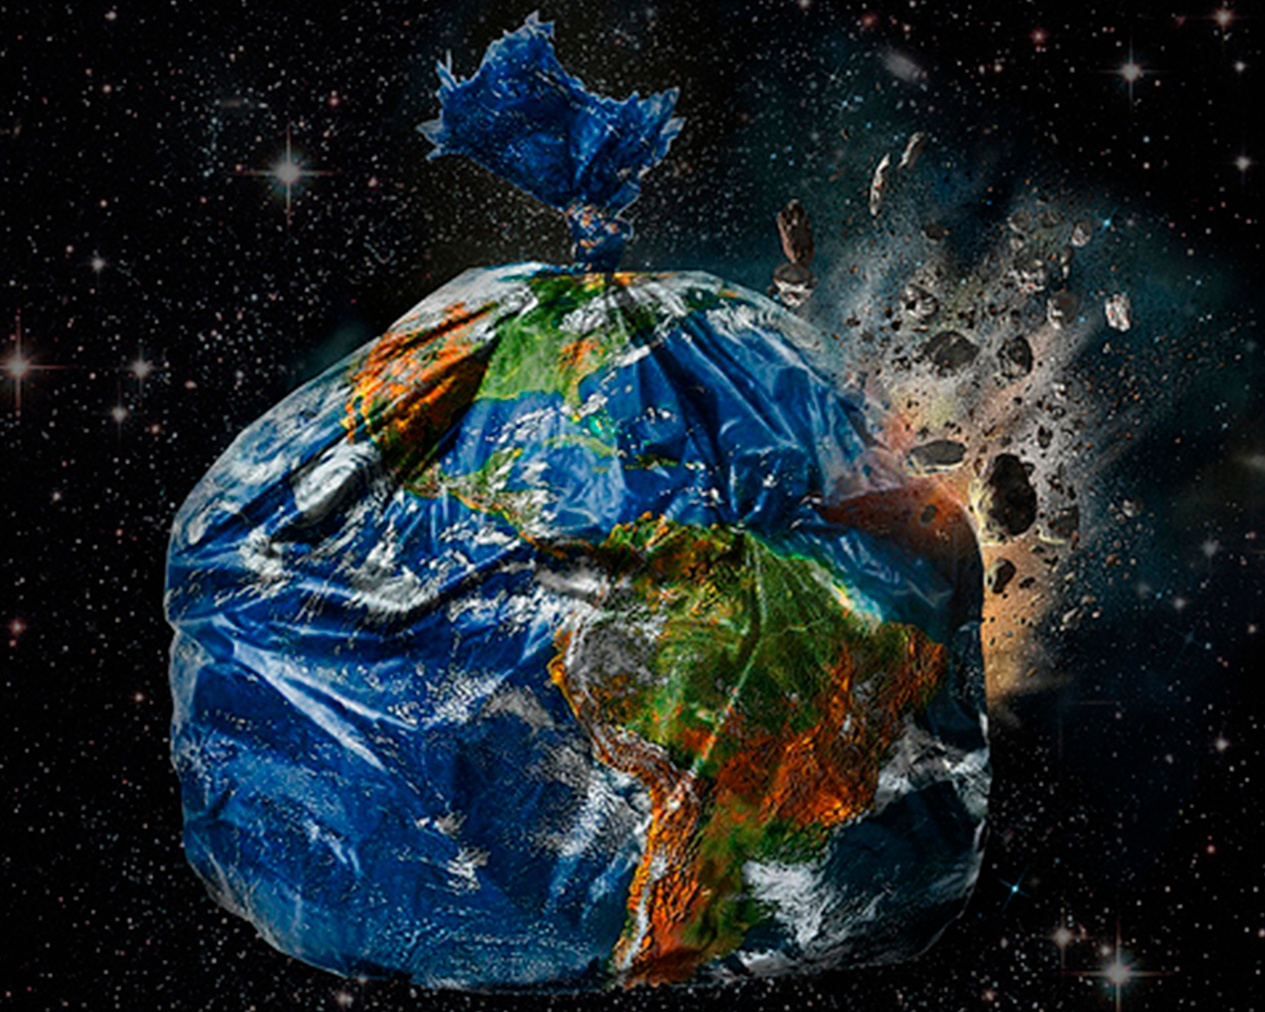 Planet Earth: Just a pile of rubbish